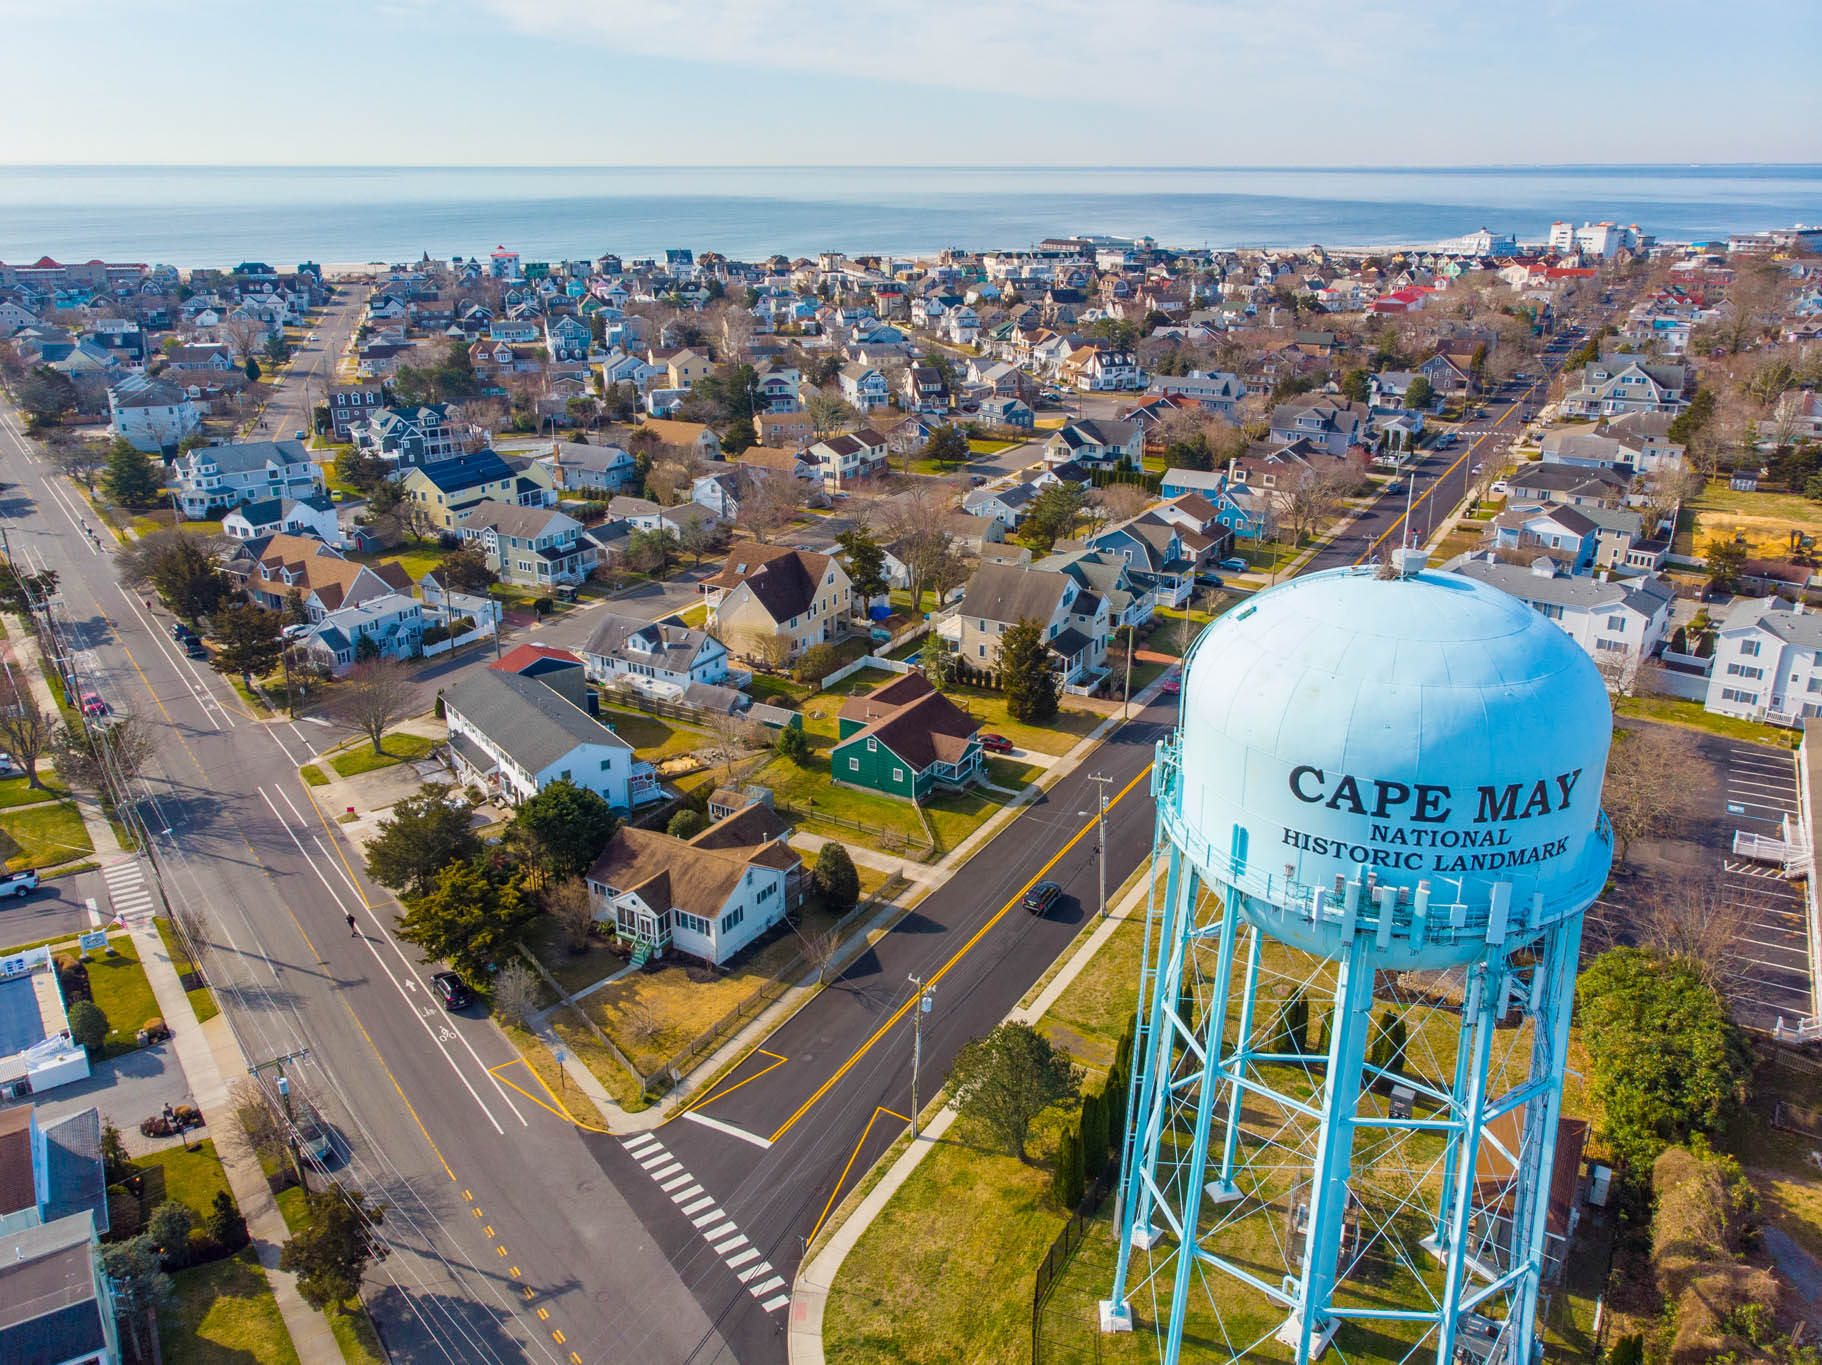 Aerial View of Cape May